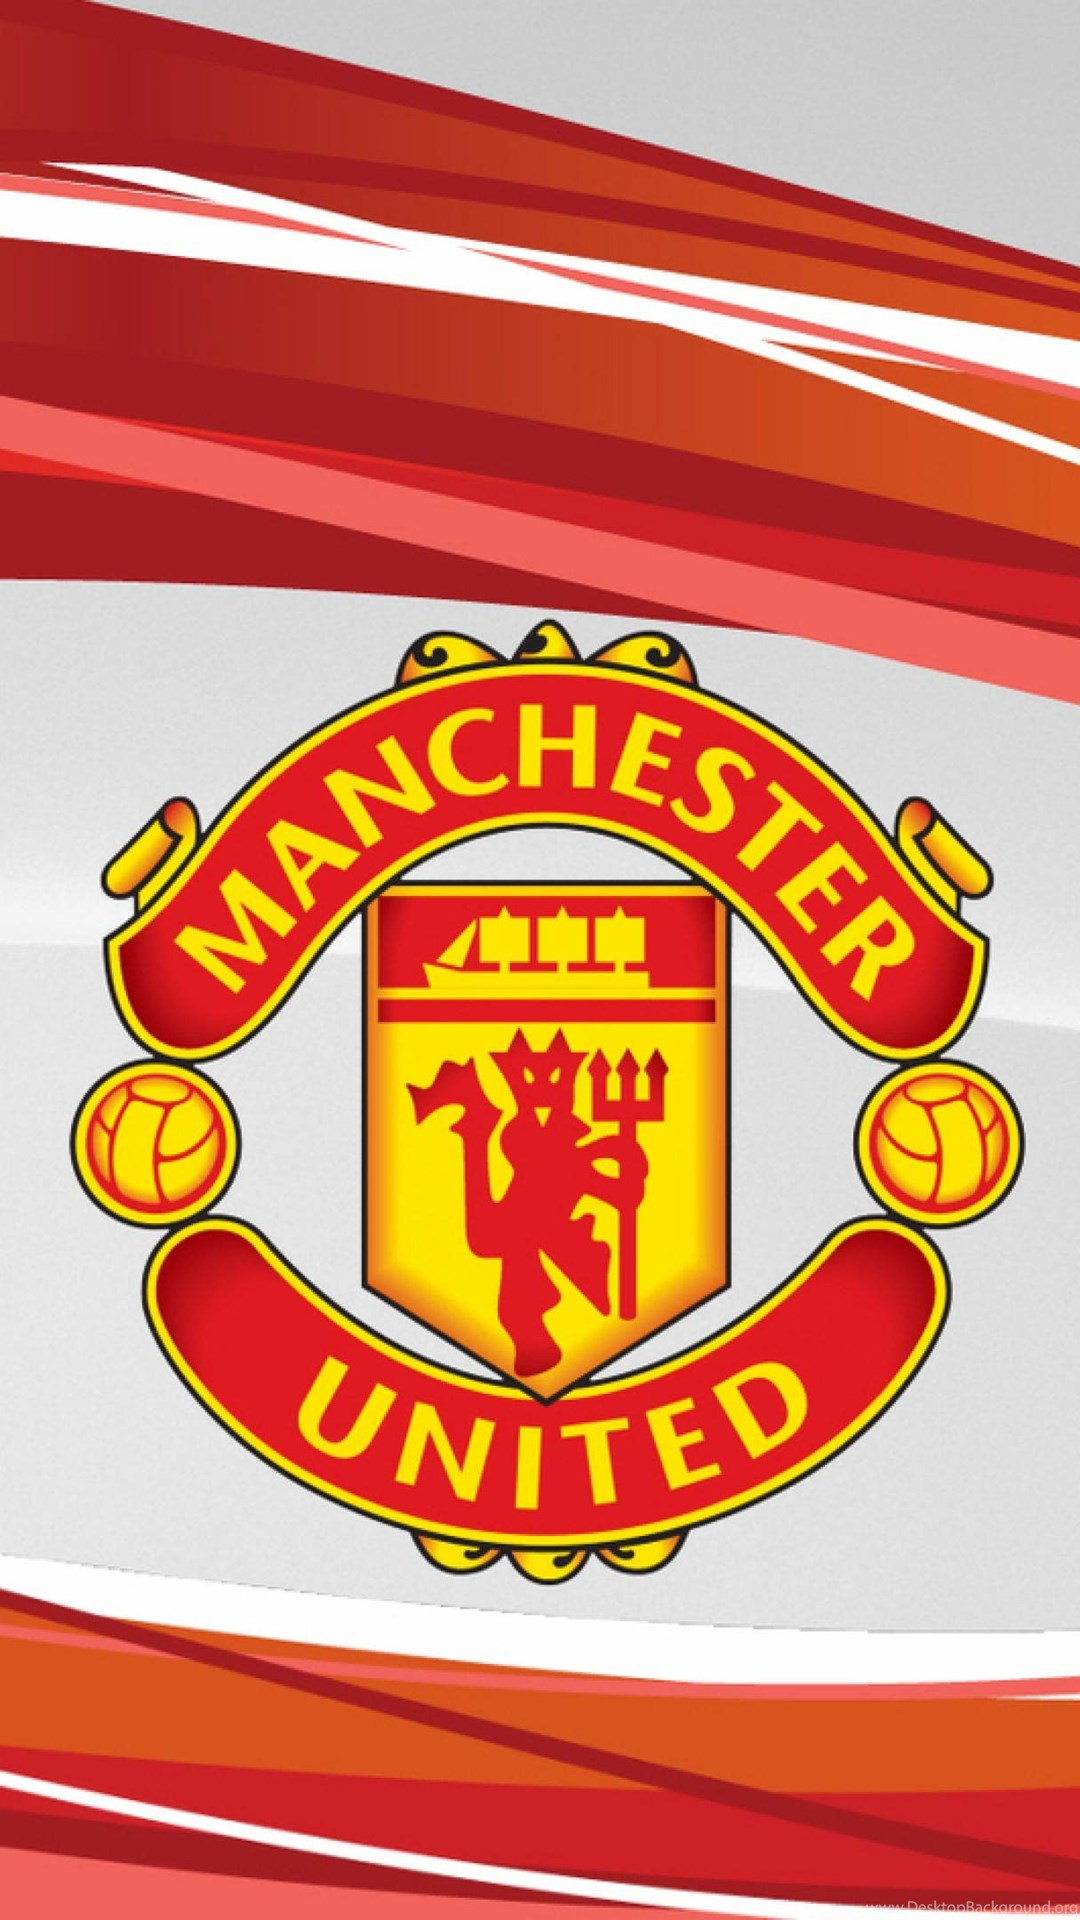 manchester united 4k wallpapers desktop background manchester united 4k wallpapers desktop